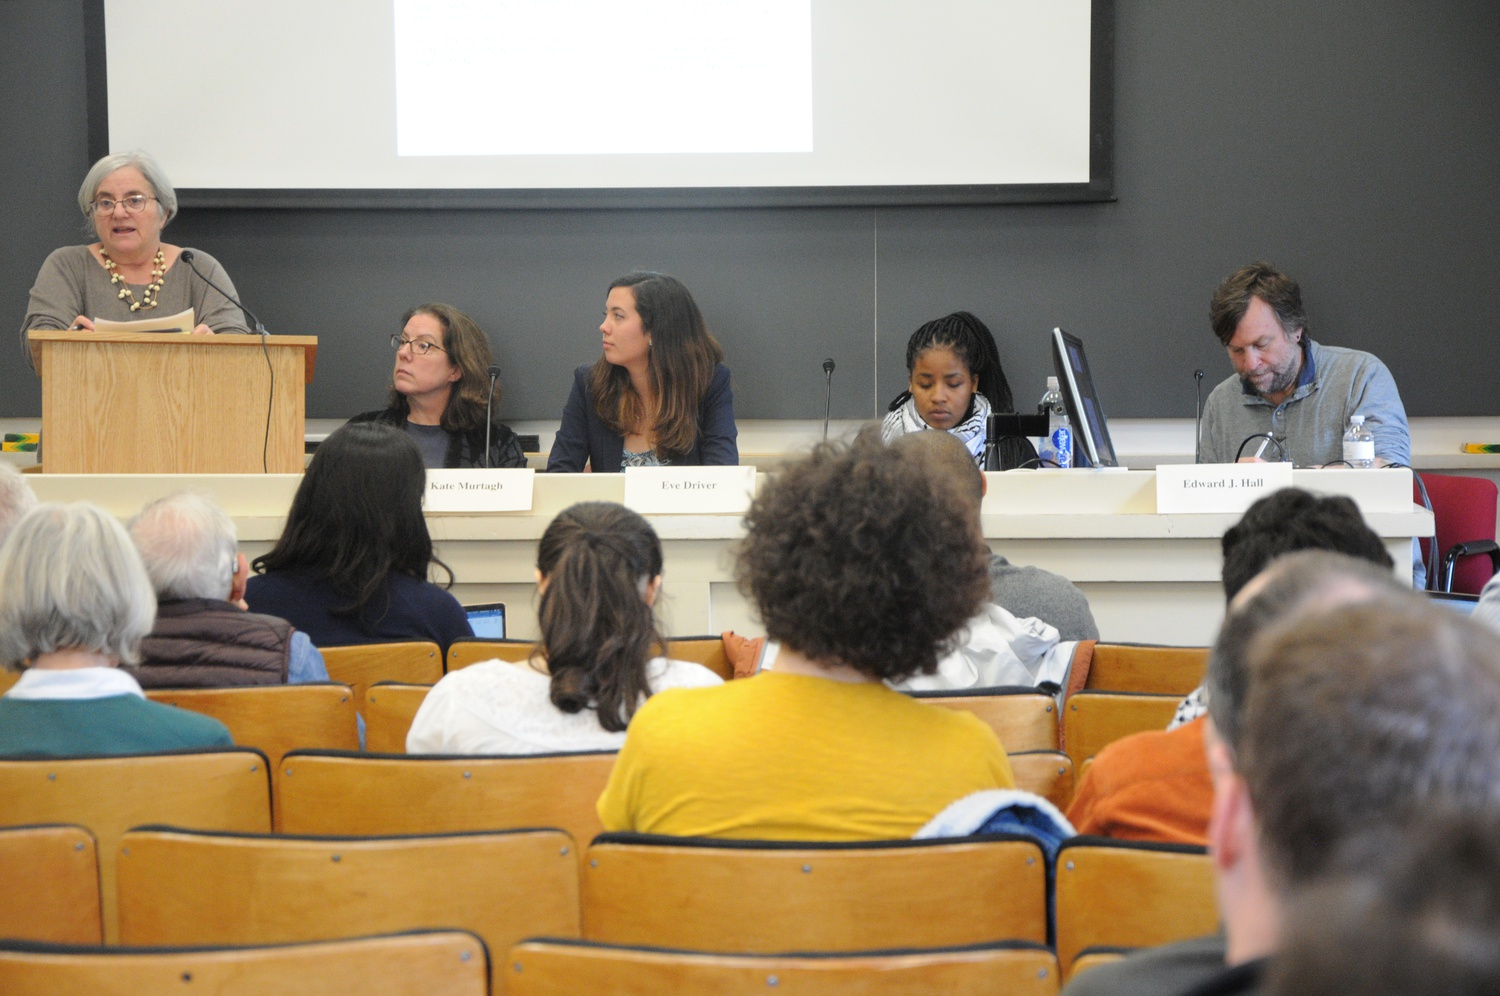 A panel on divestment, which included a Harvard Management Company executive, discussed divestment and compliance.